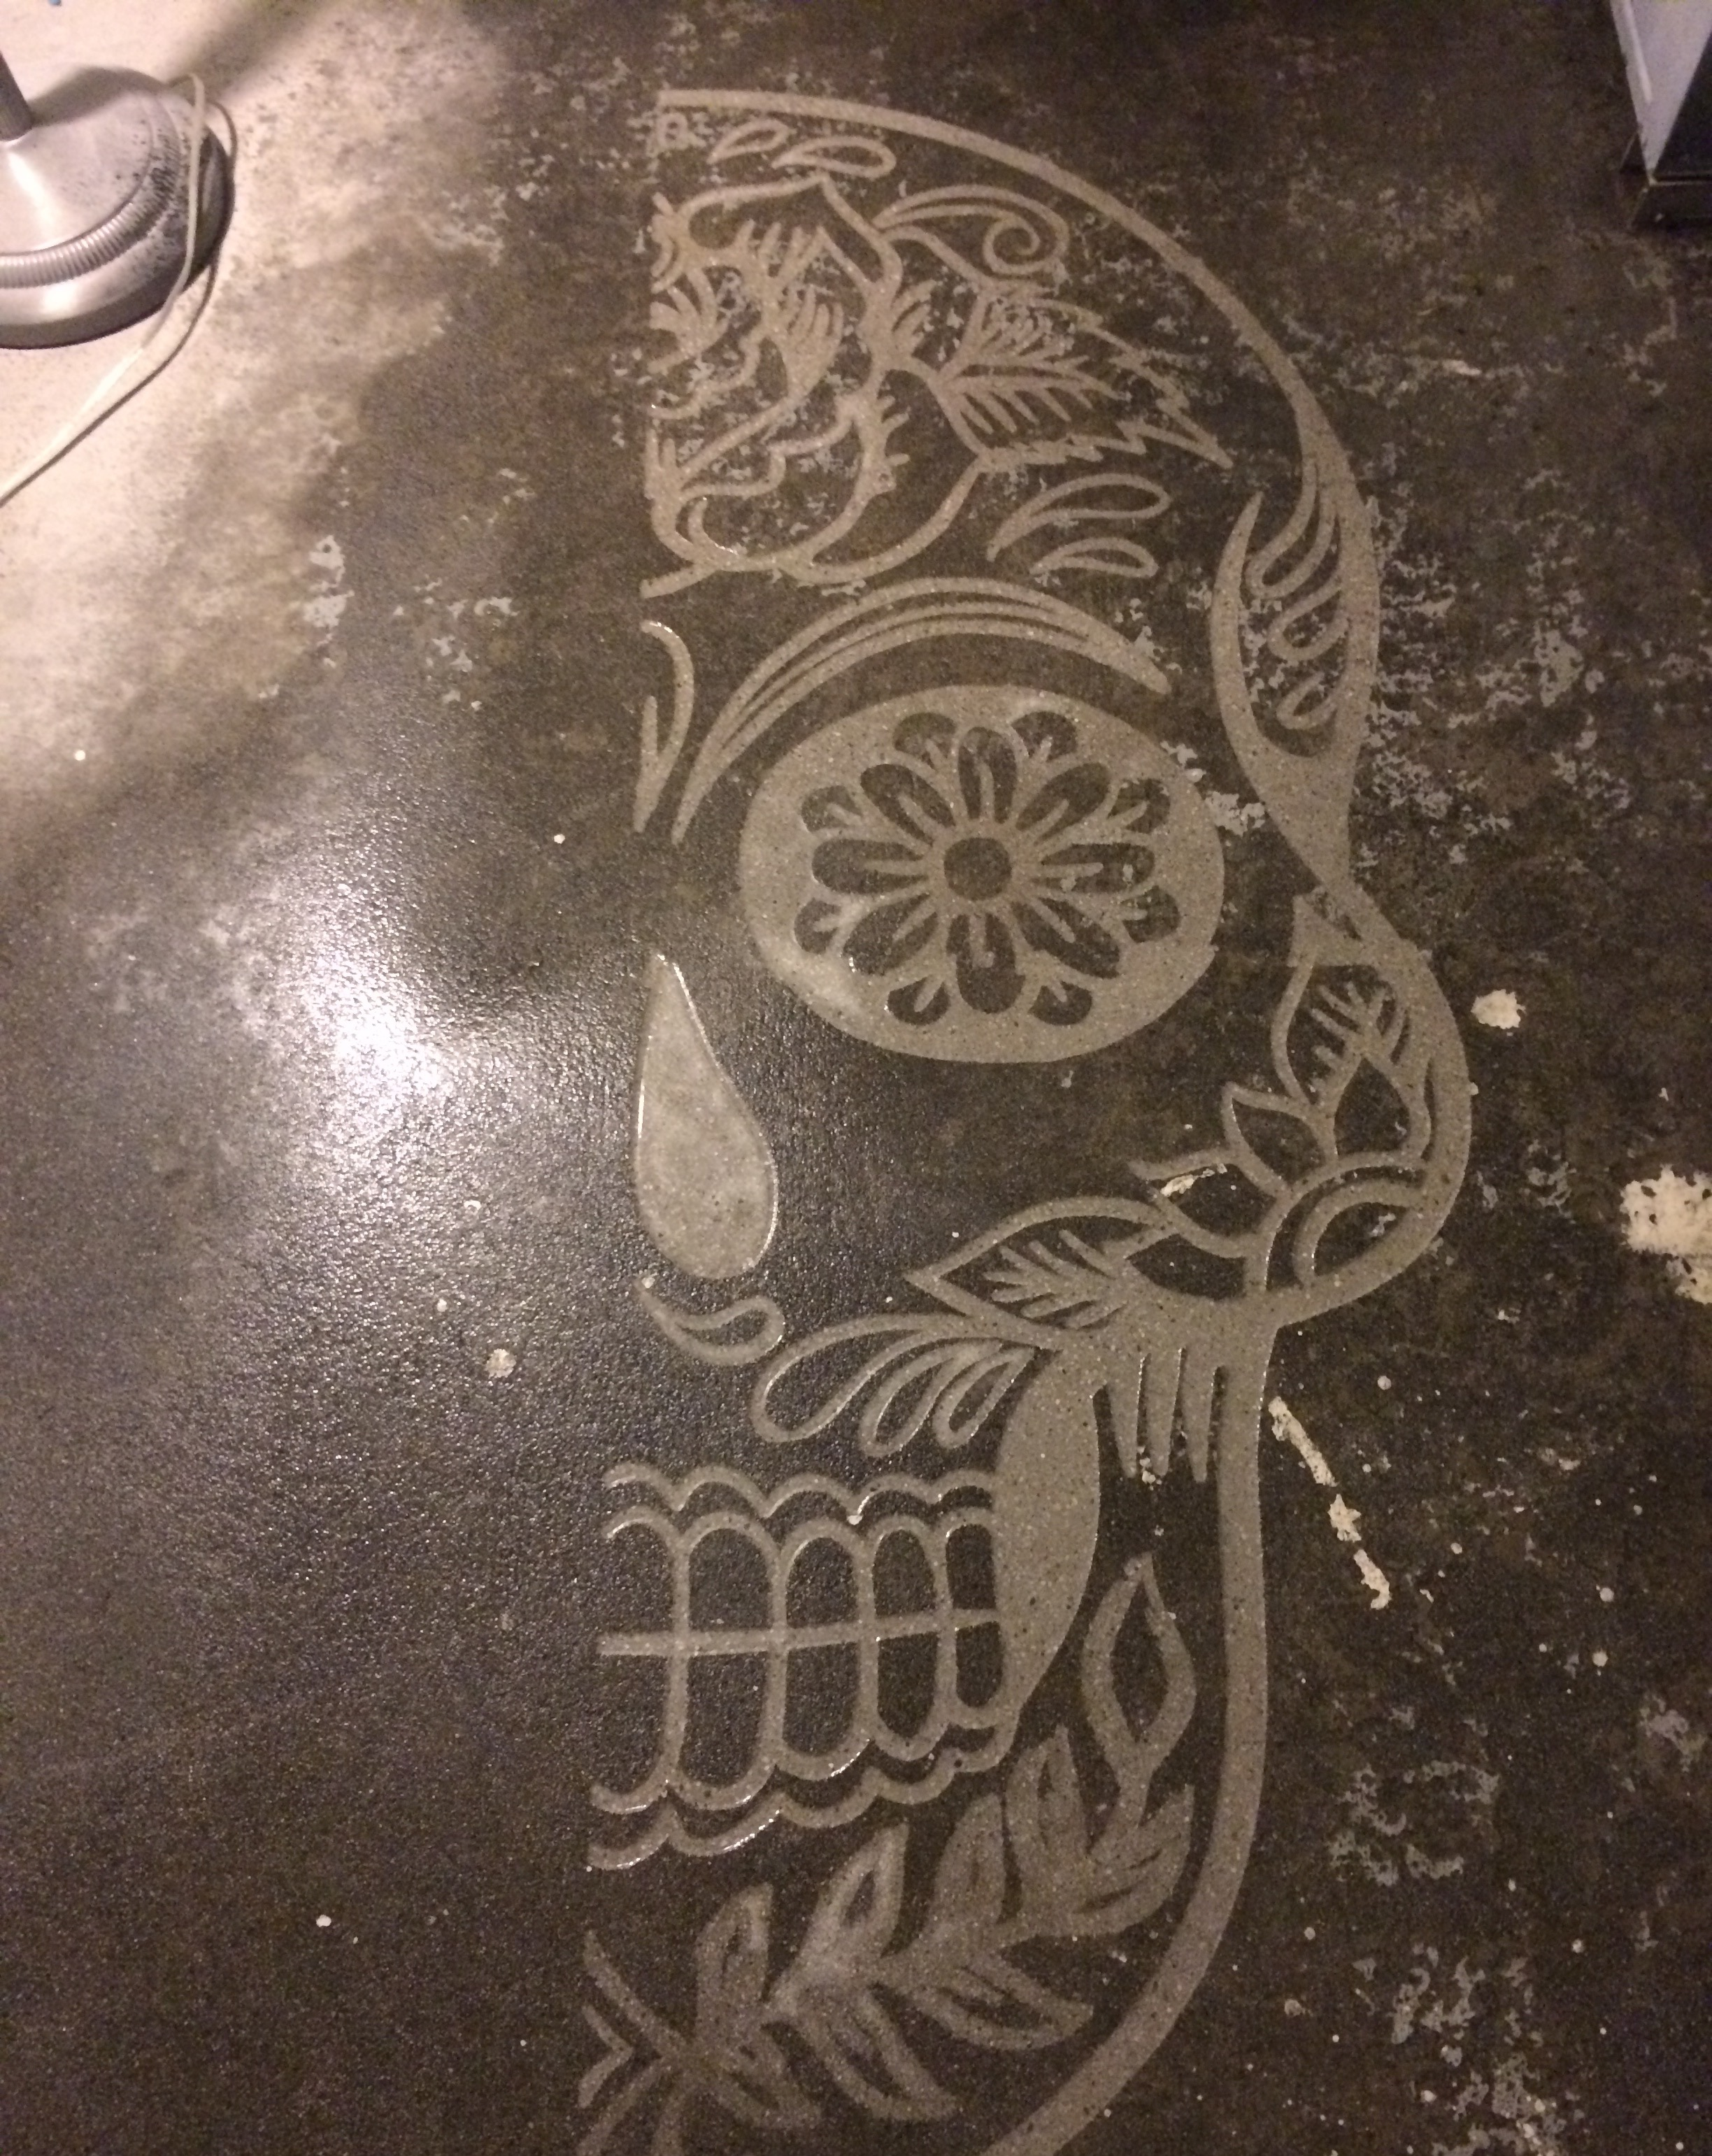 Mexican Day of the Dead engraving